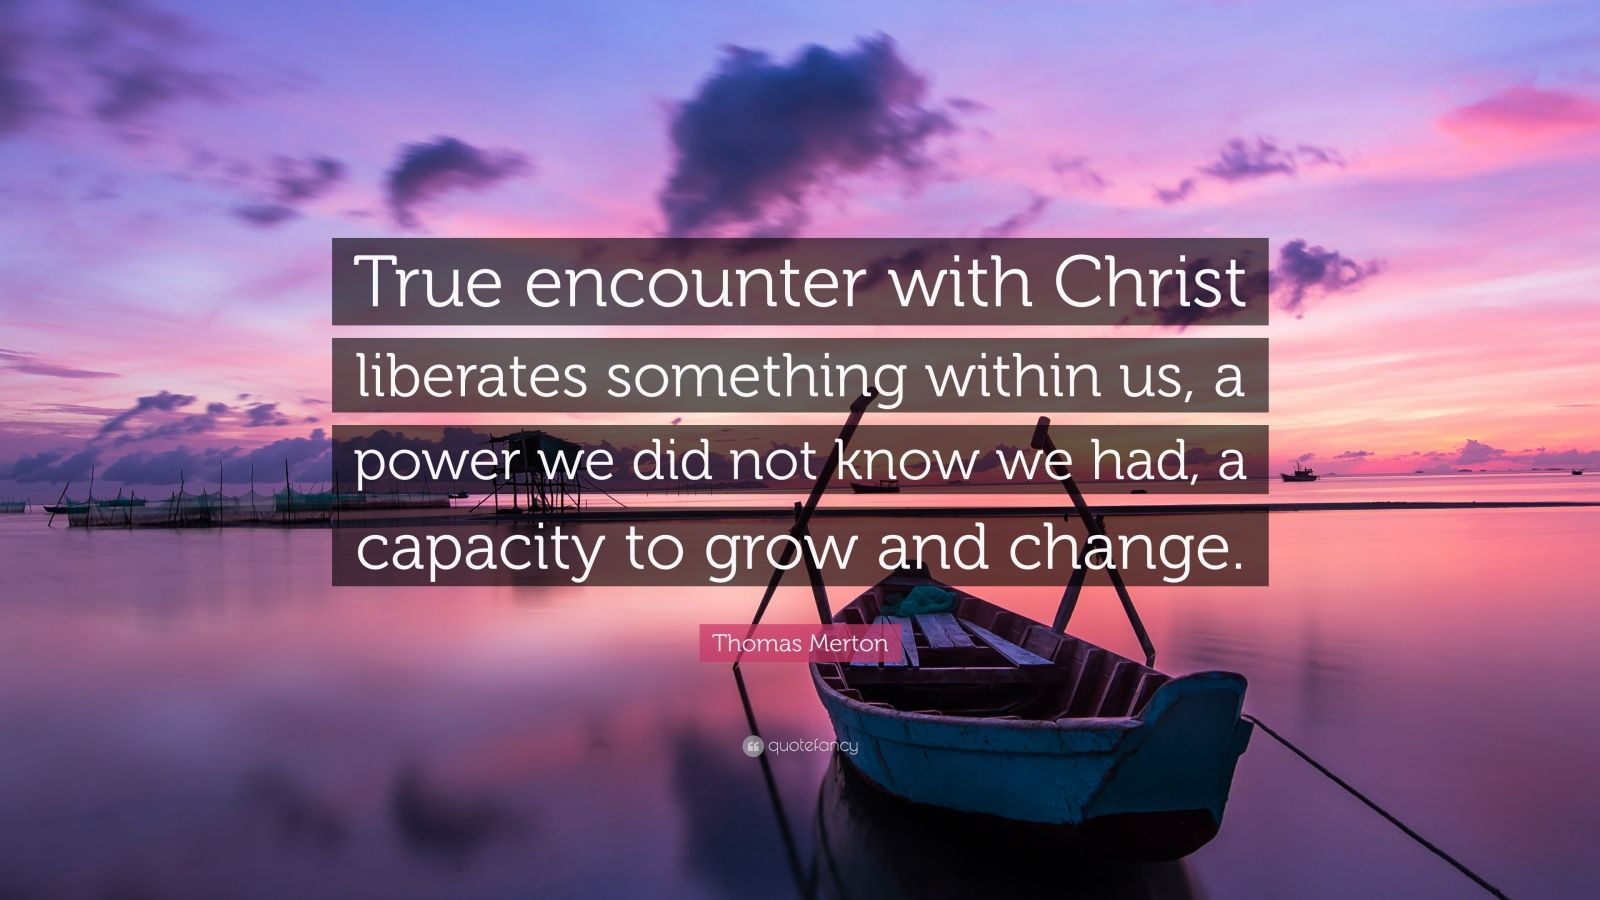 """Thomas Merton Quote: """"True encounter with Christ liberates something within us, a power we did not know we had, a capacity to grow and change."""""""